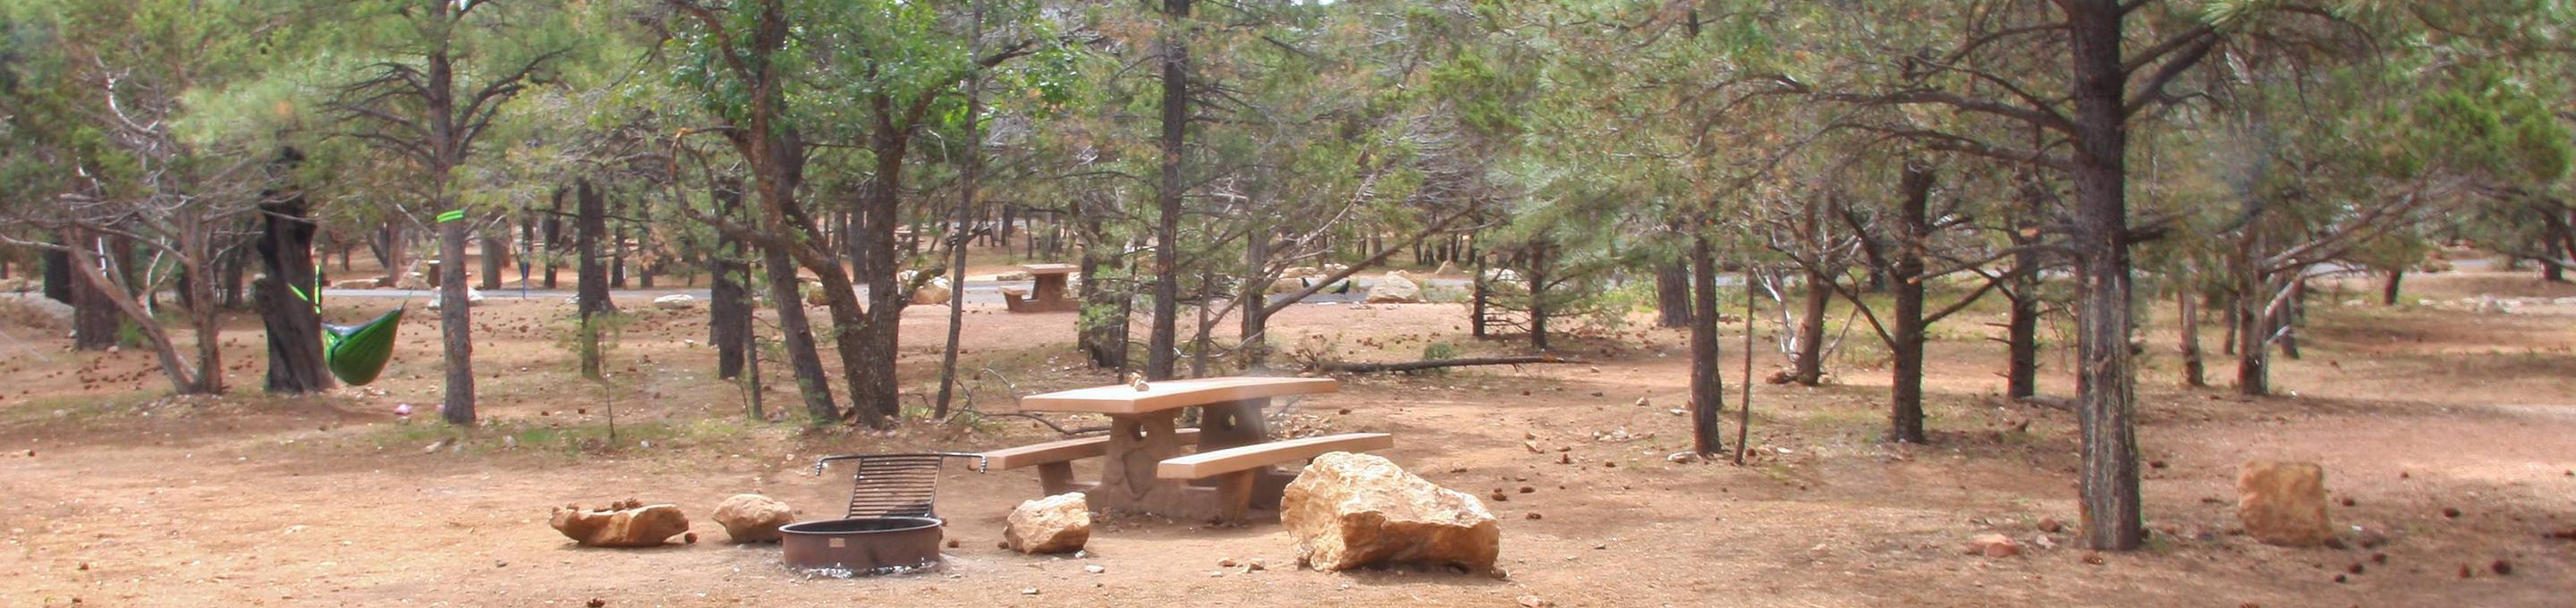 Picnic table, fire pit, and parking spot, Mather CampgroundPicnic table, fire pit, and parking spot for Pine Loop 282, Mather Campground